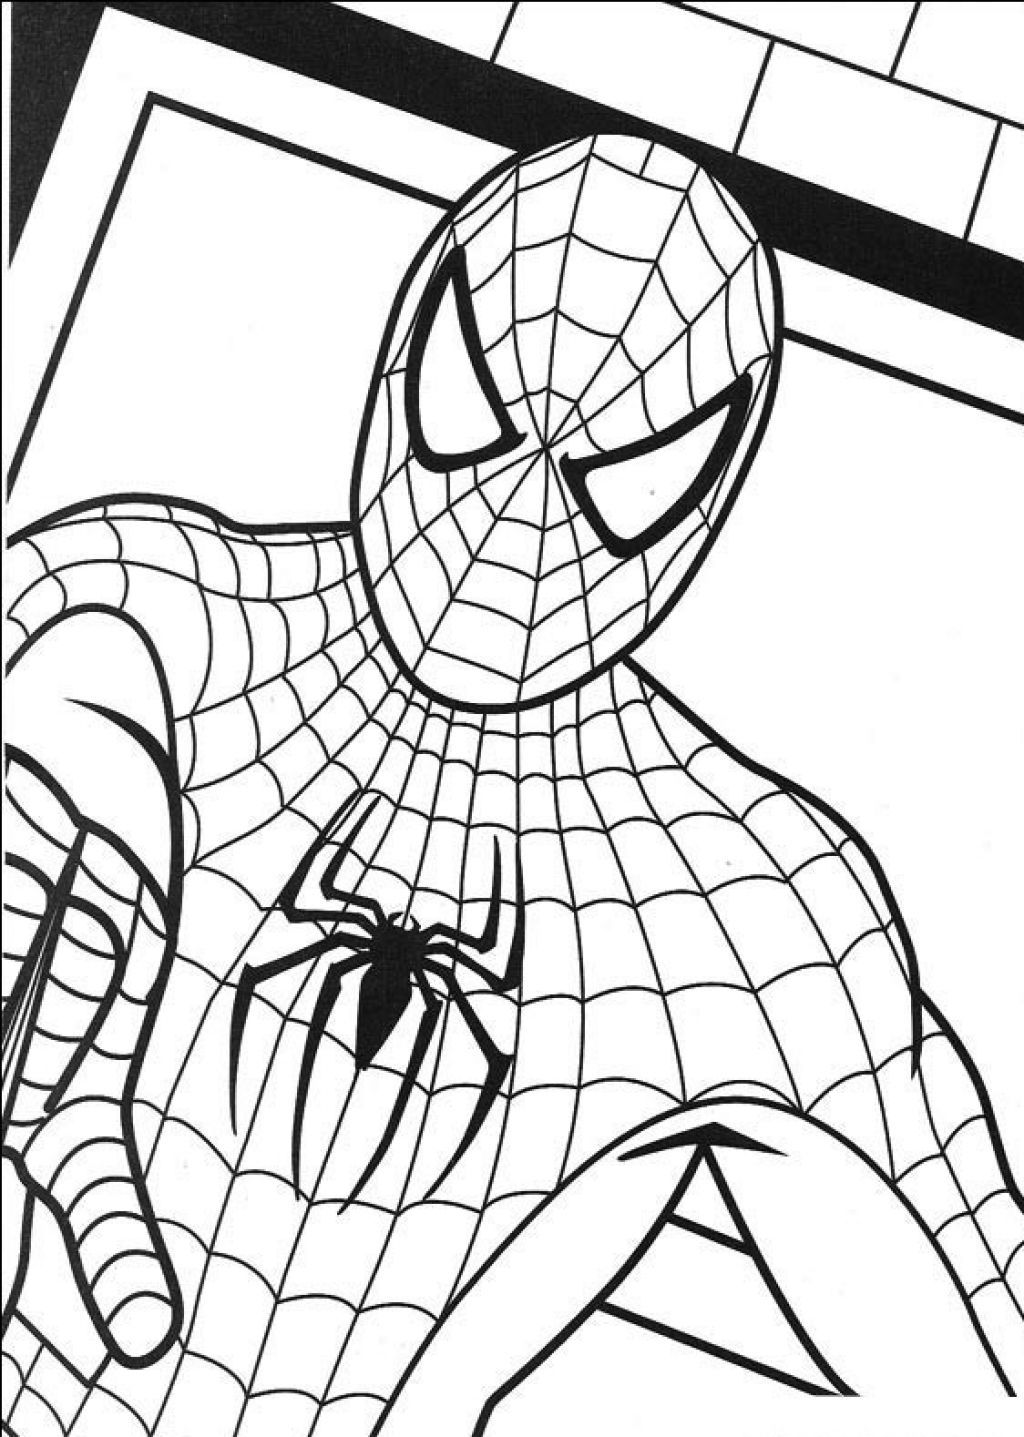 spiderman coloring pages printables print download spiderman coloring pages an enjoyable pages printables coloring spiderman